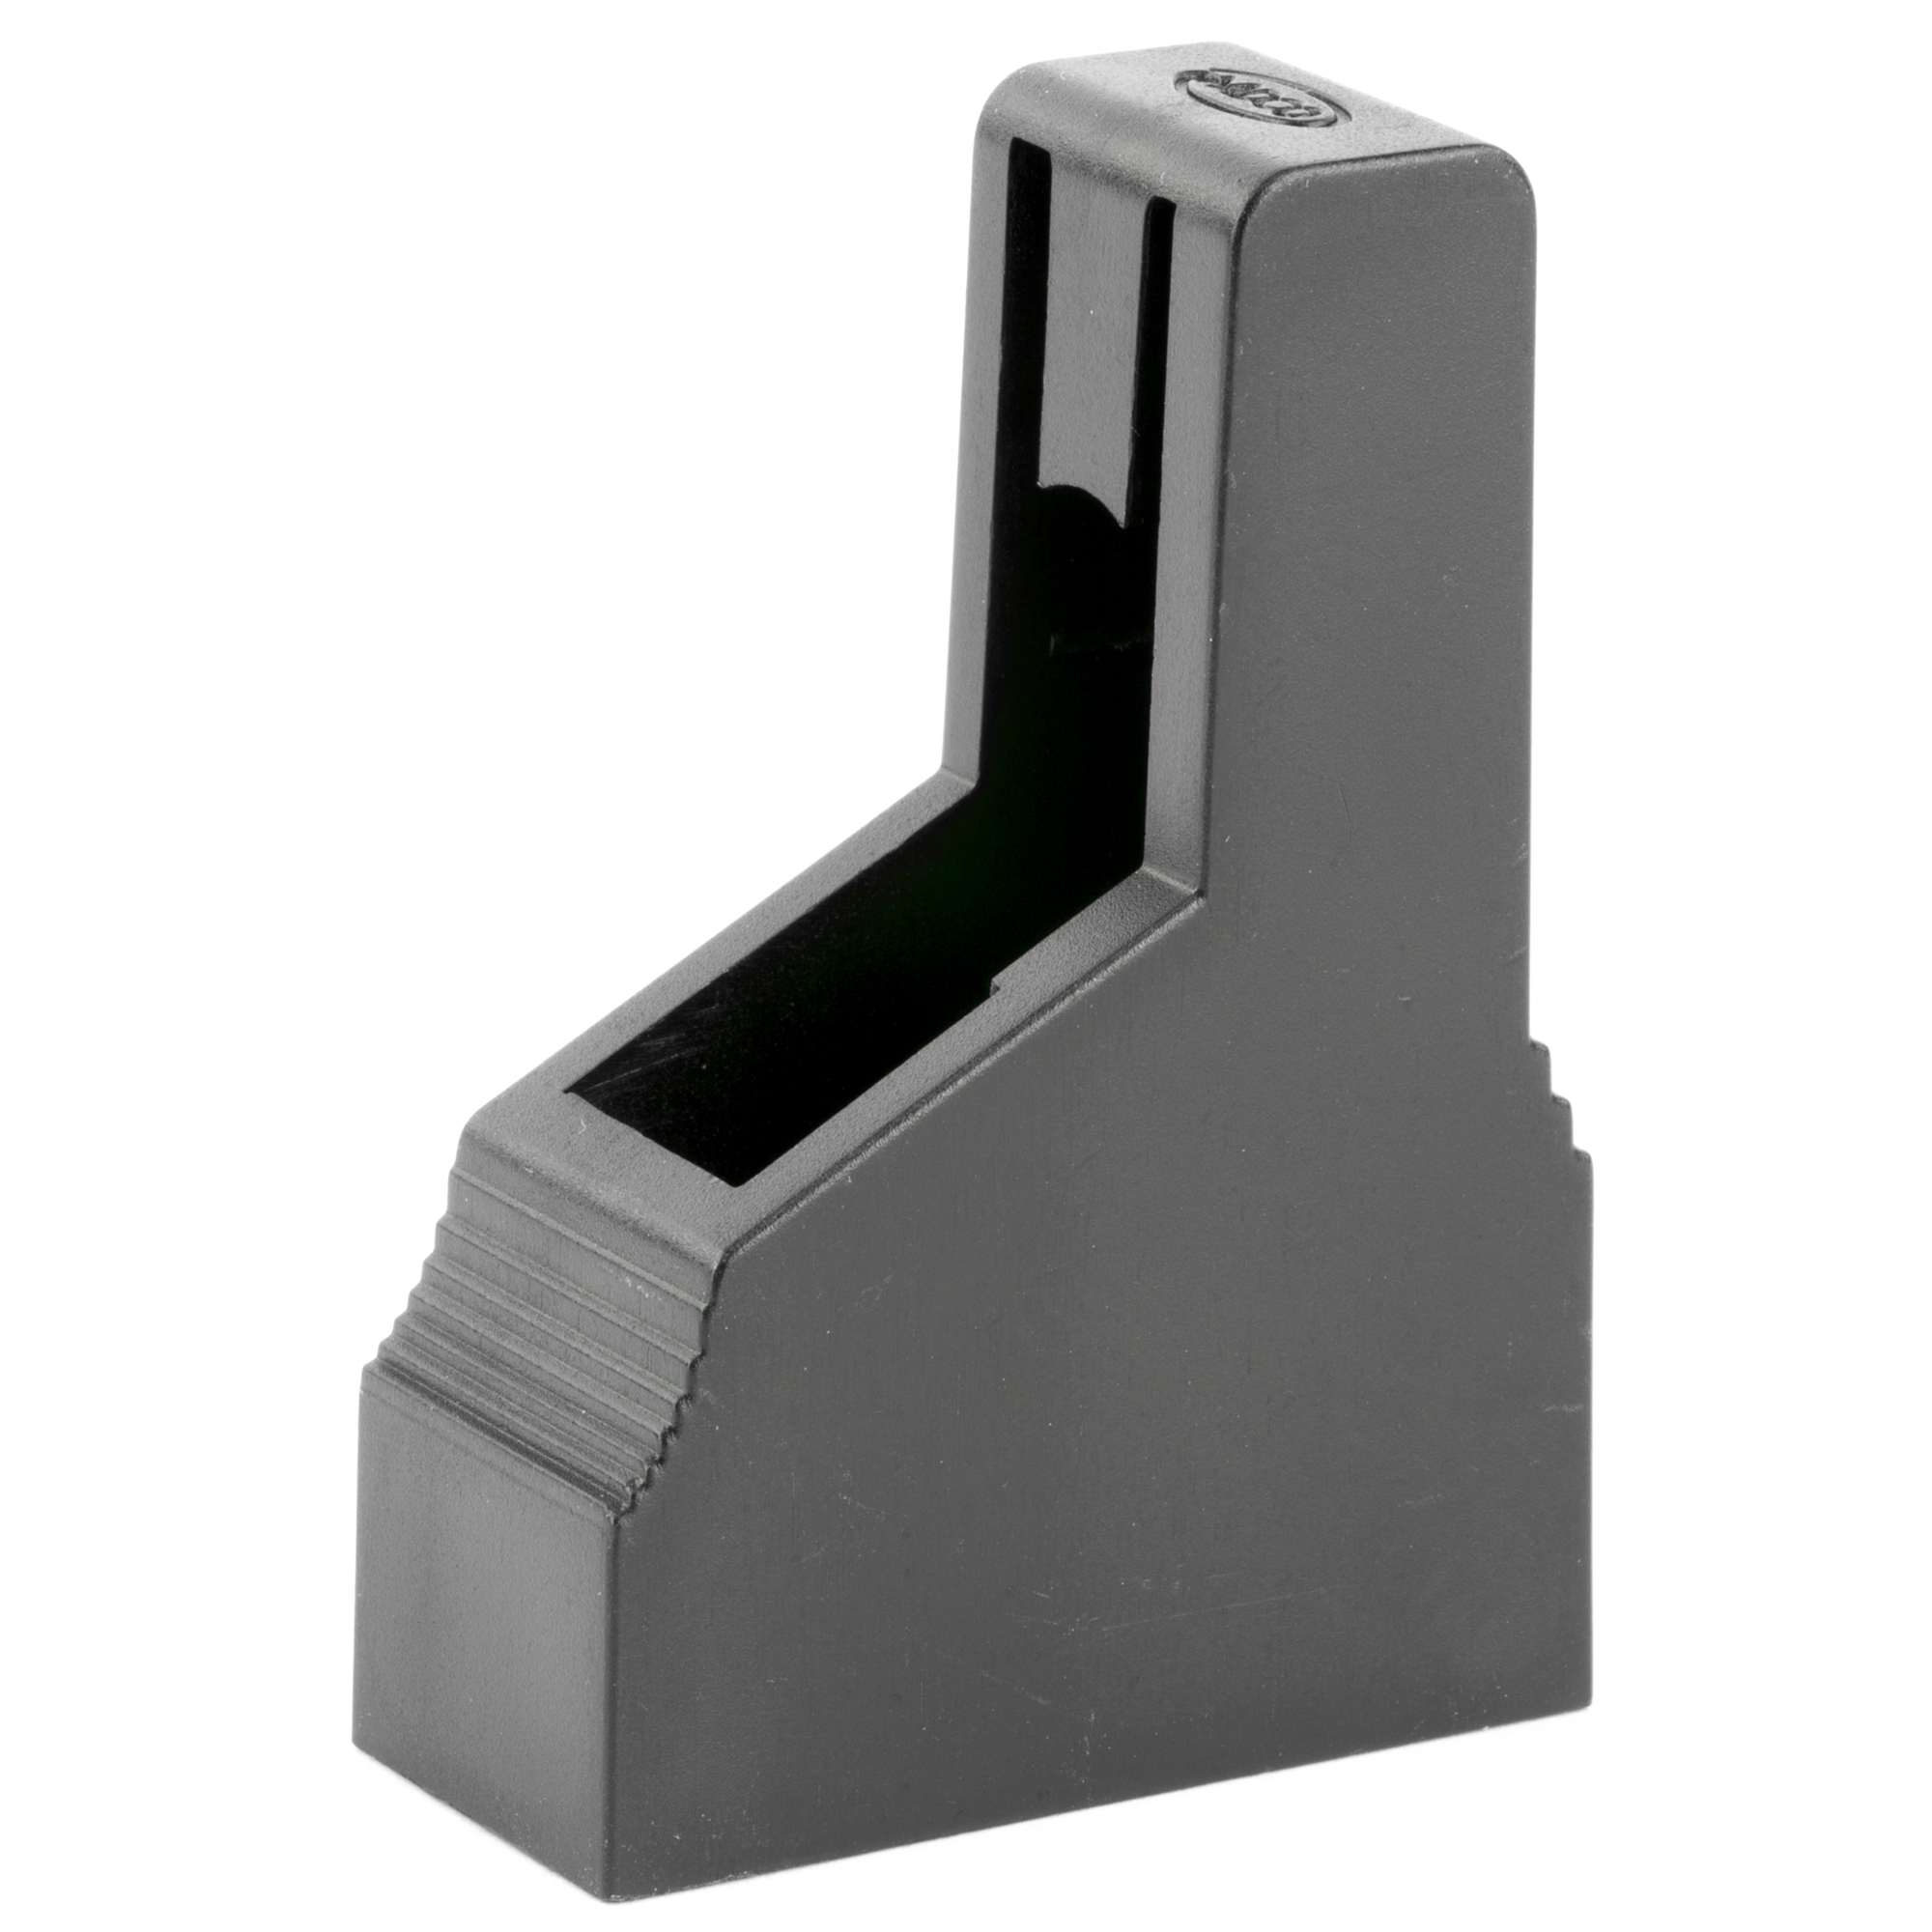 """Reloading magazines takes a lot of cheer out of a day of shooting fun. With the ADCO Super Thumb Loader"""" you should be in good shape but you might need to bring a little extra ammo so you don't run out."""